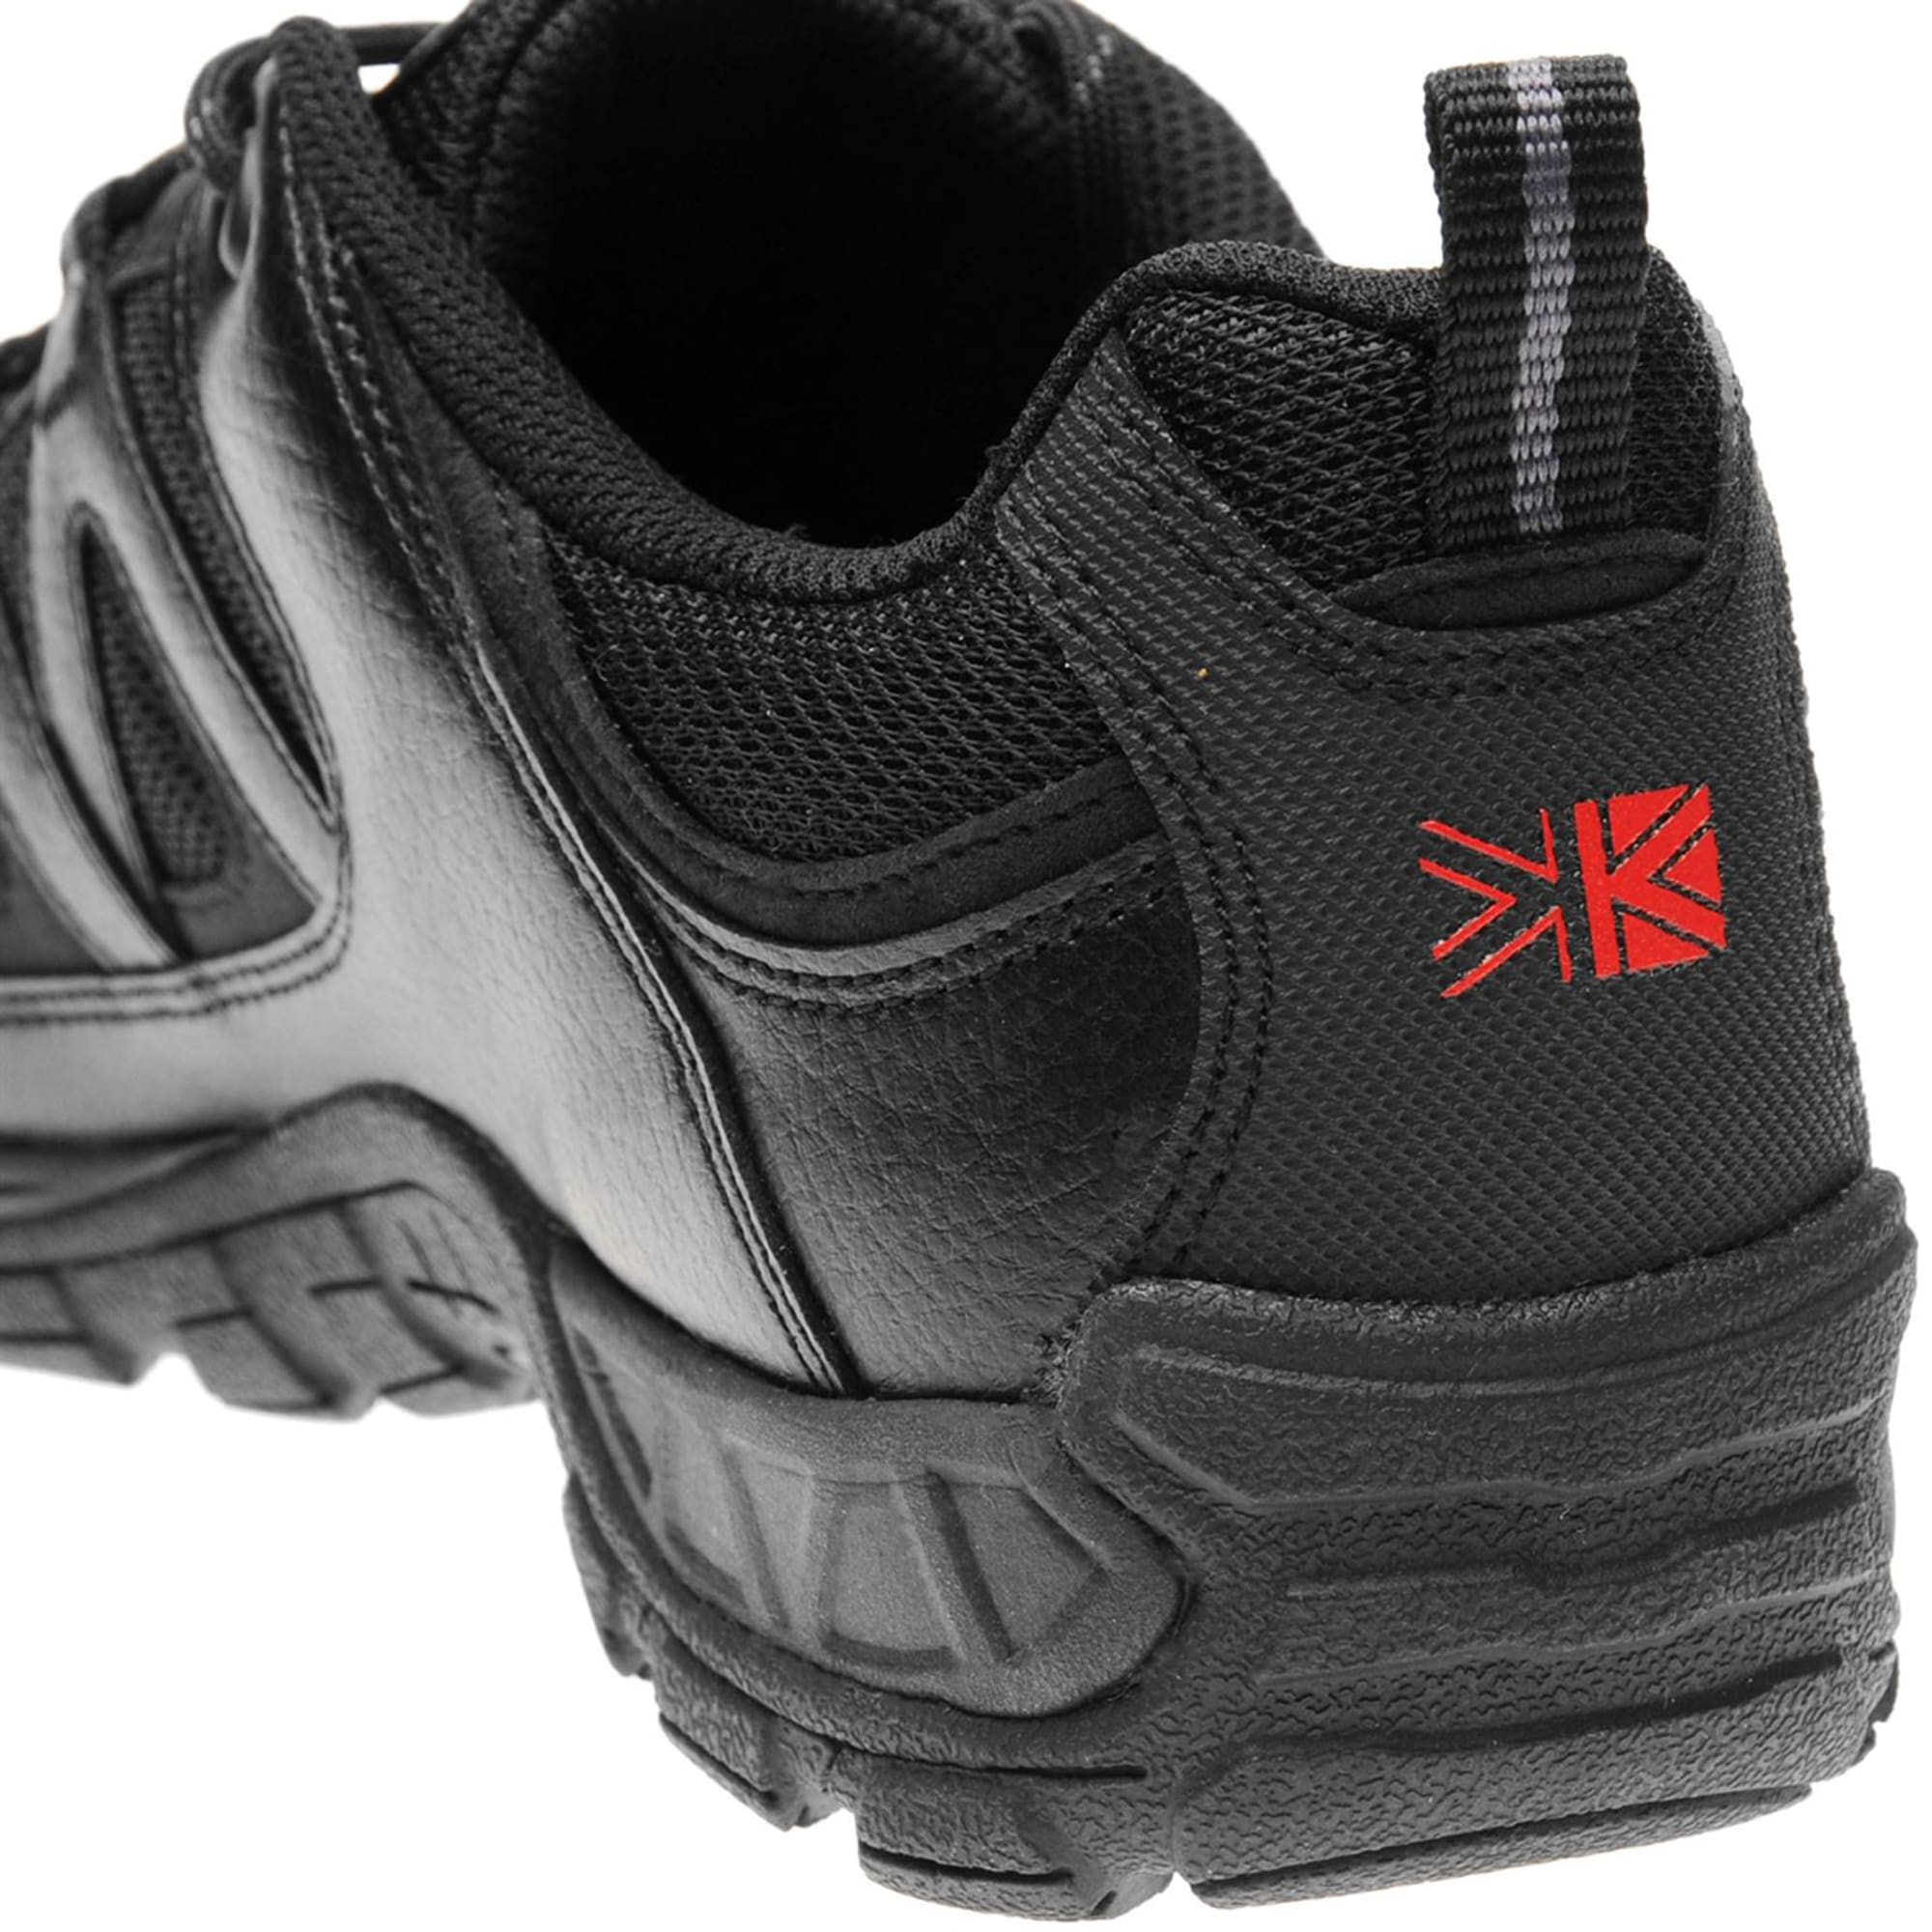 Summit Leather Low Hiking Shoes